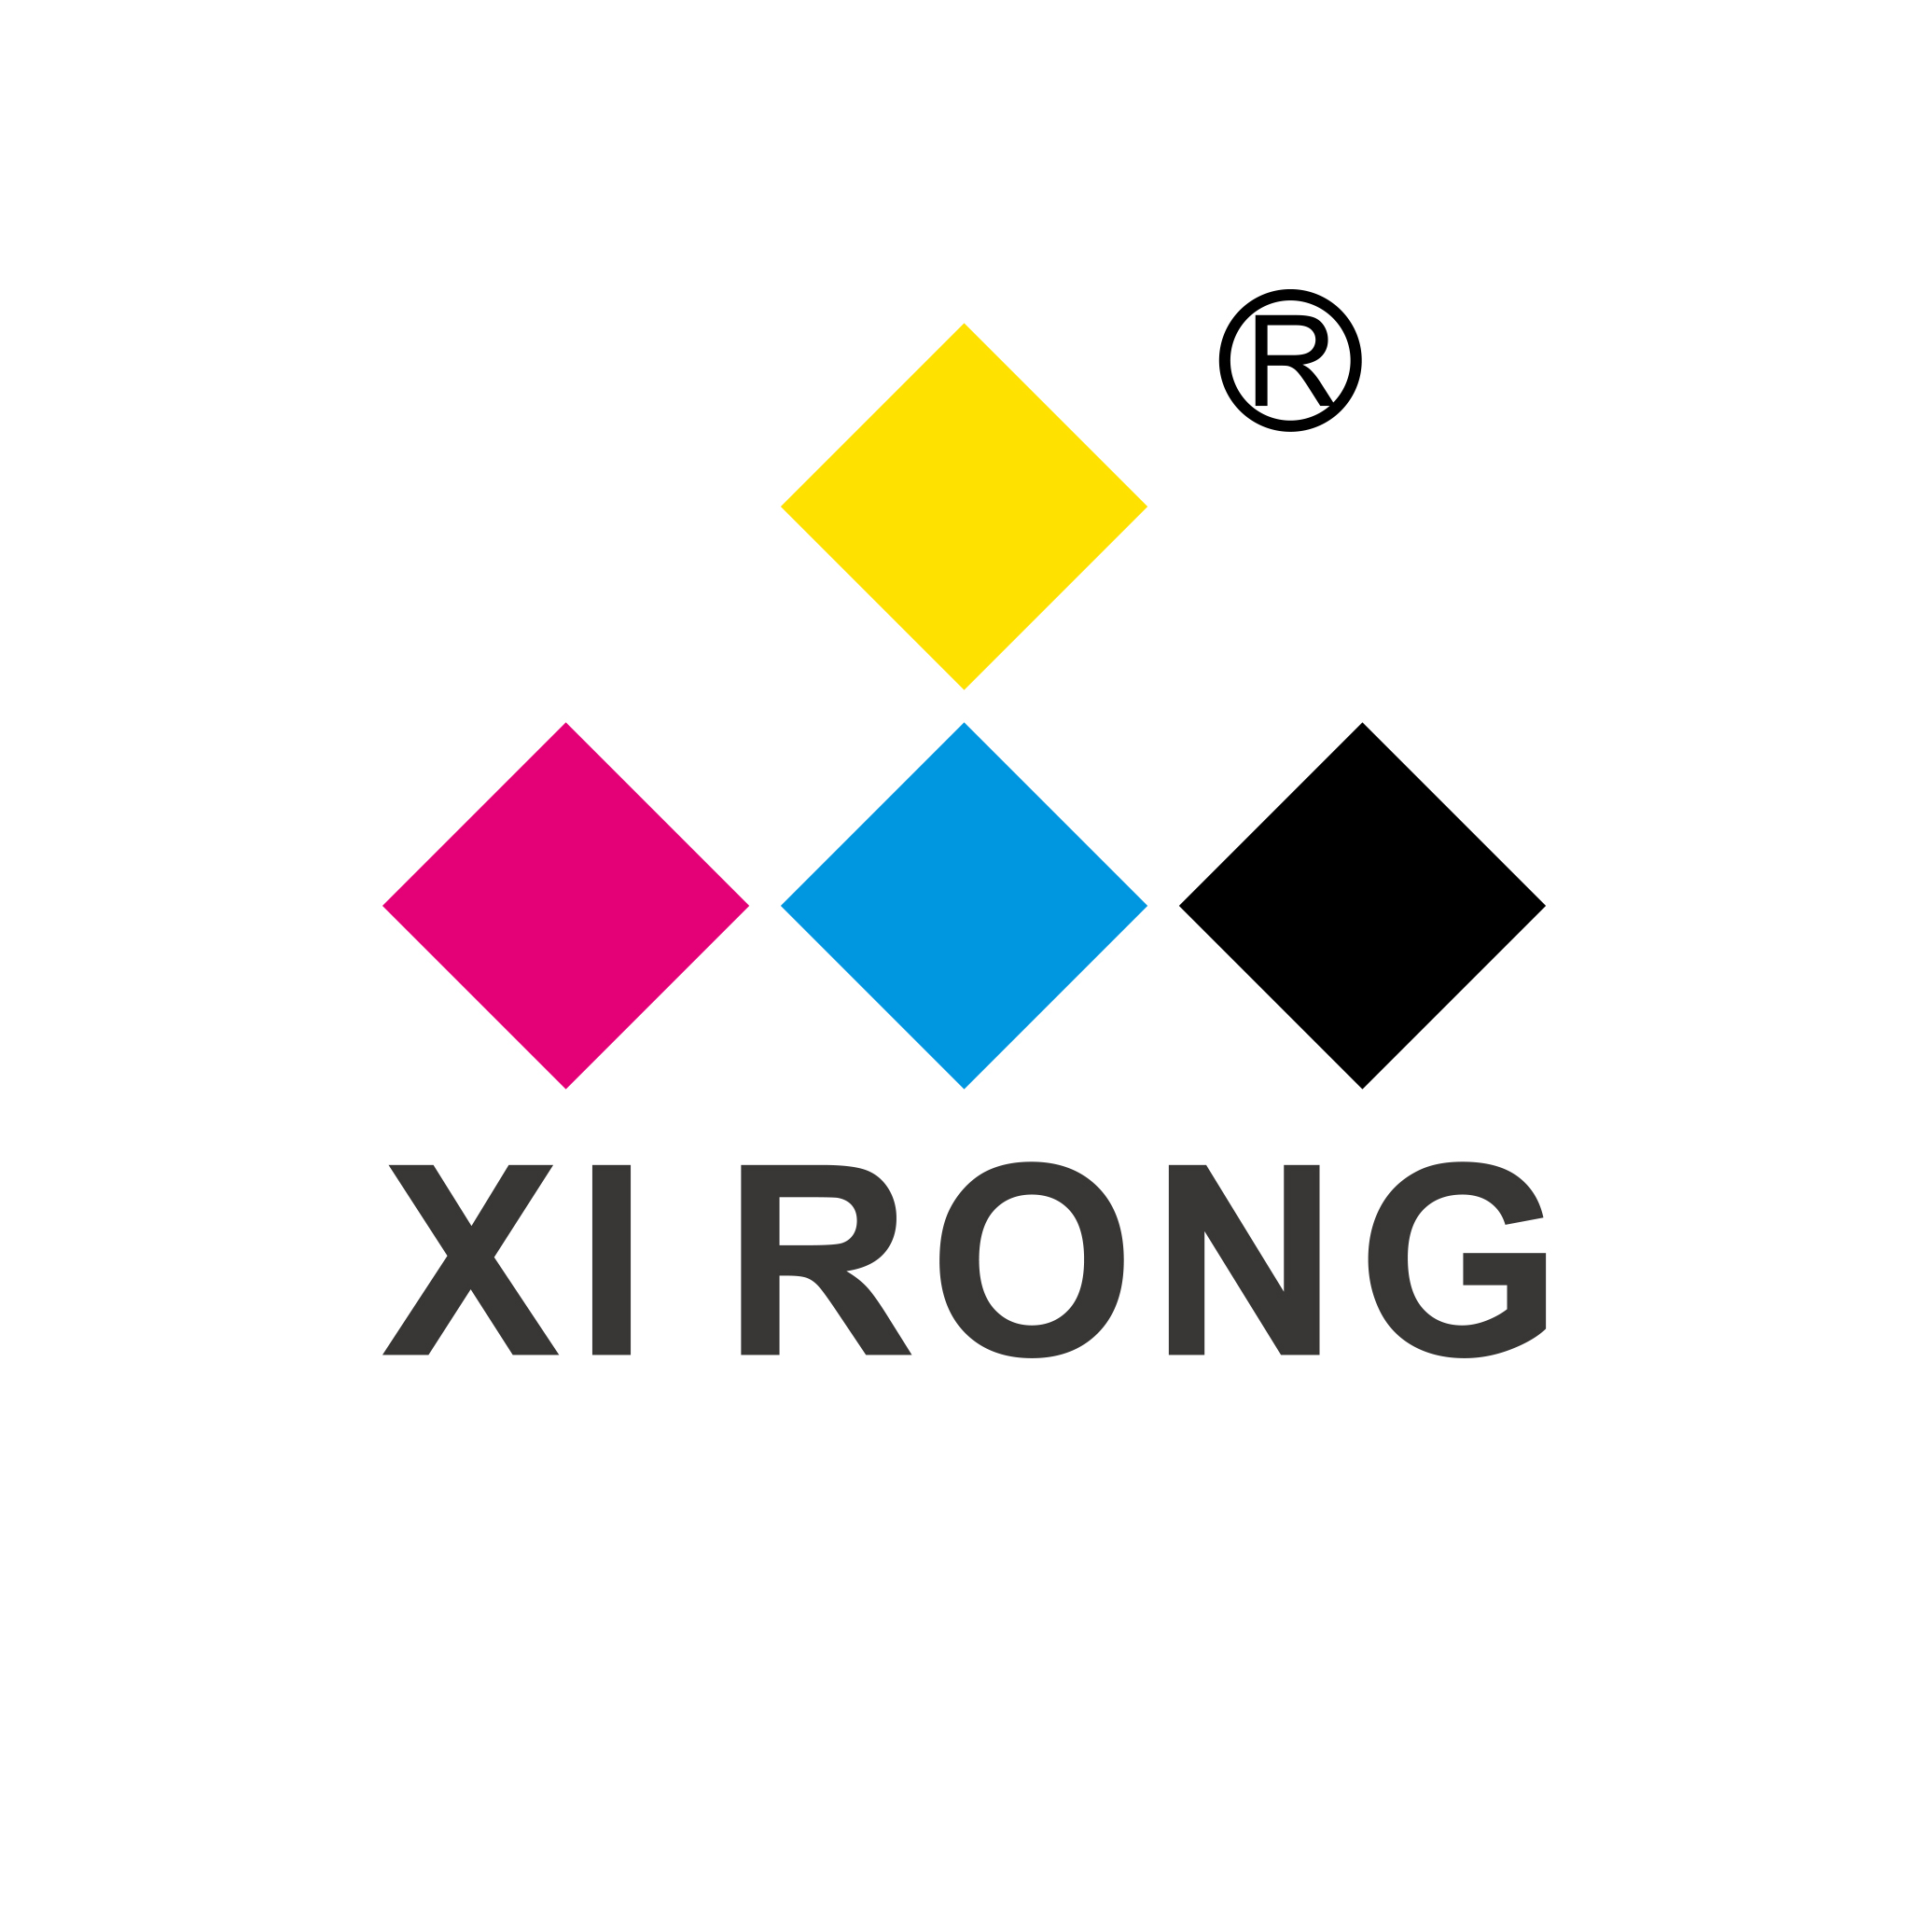 GUANGDONG XIRONG CULTURE & TECHNOLOGY CO., LTD